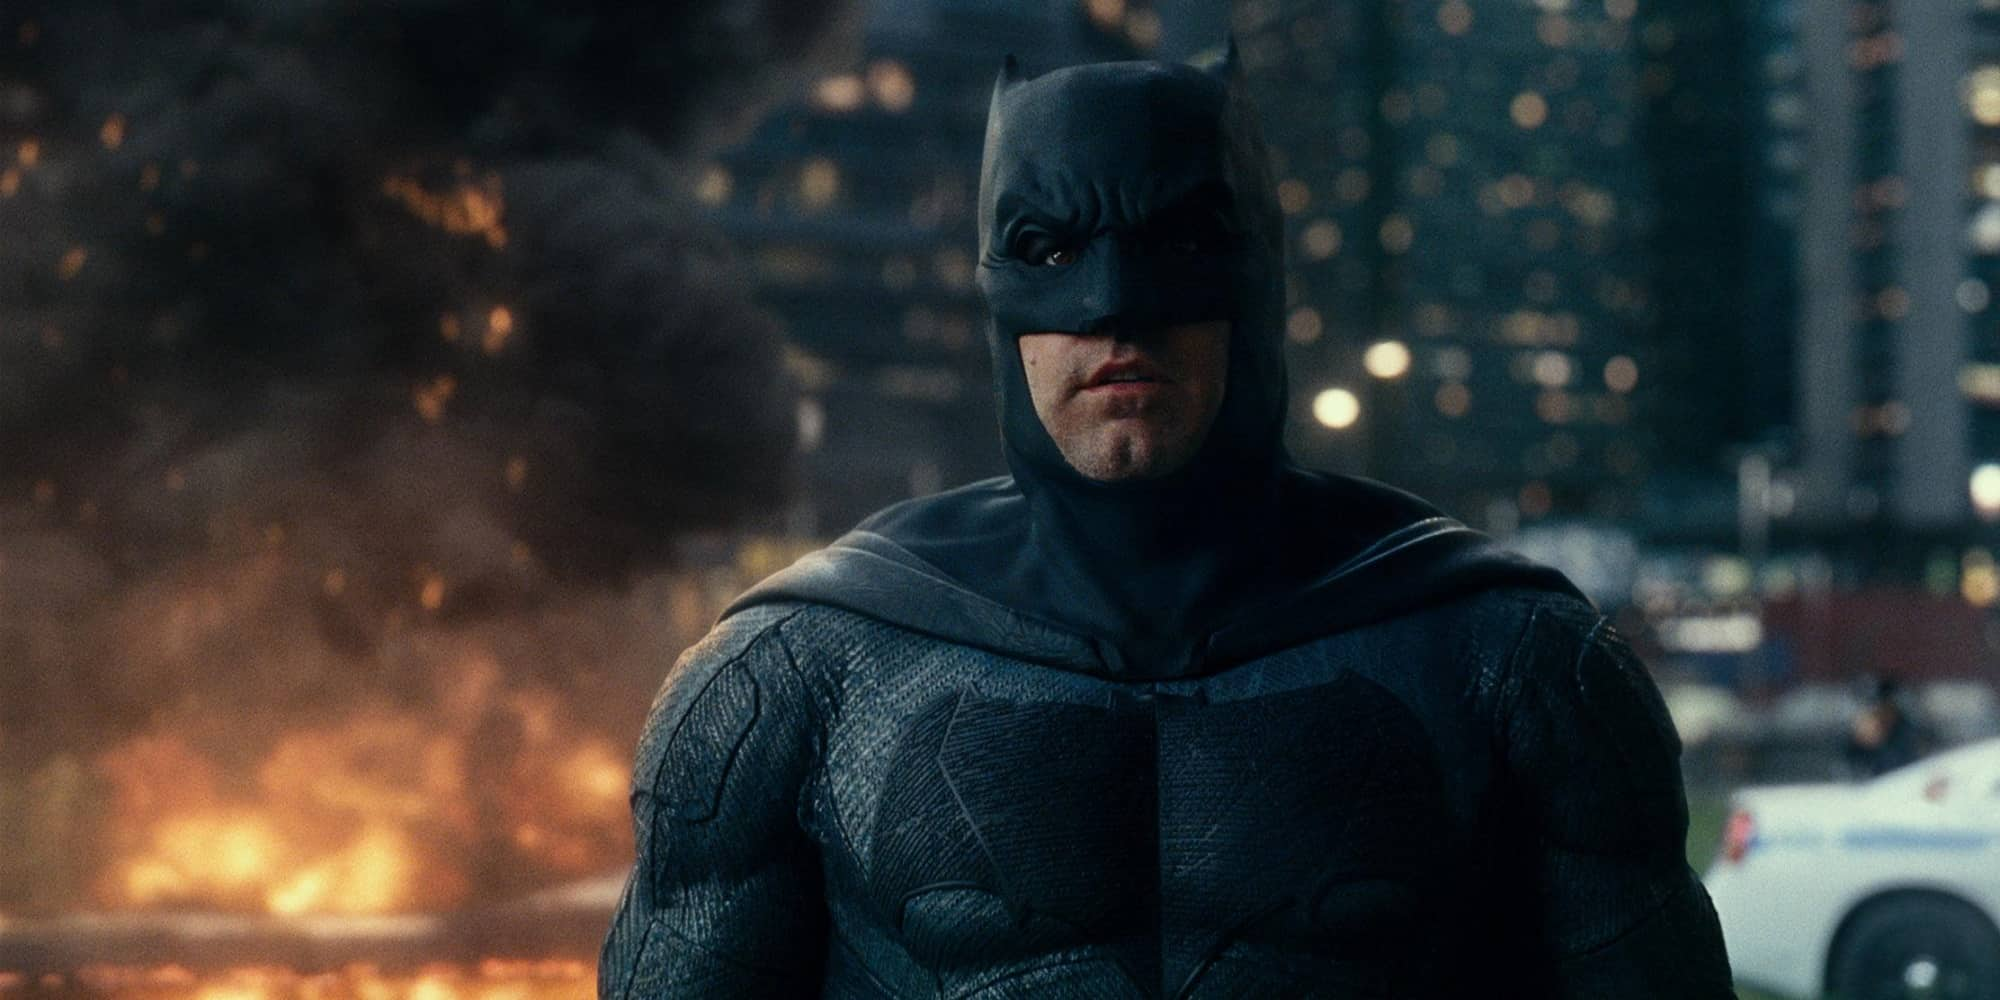 Ben Affleck Stopped Being the Batman Justice League